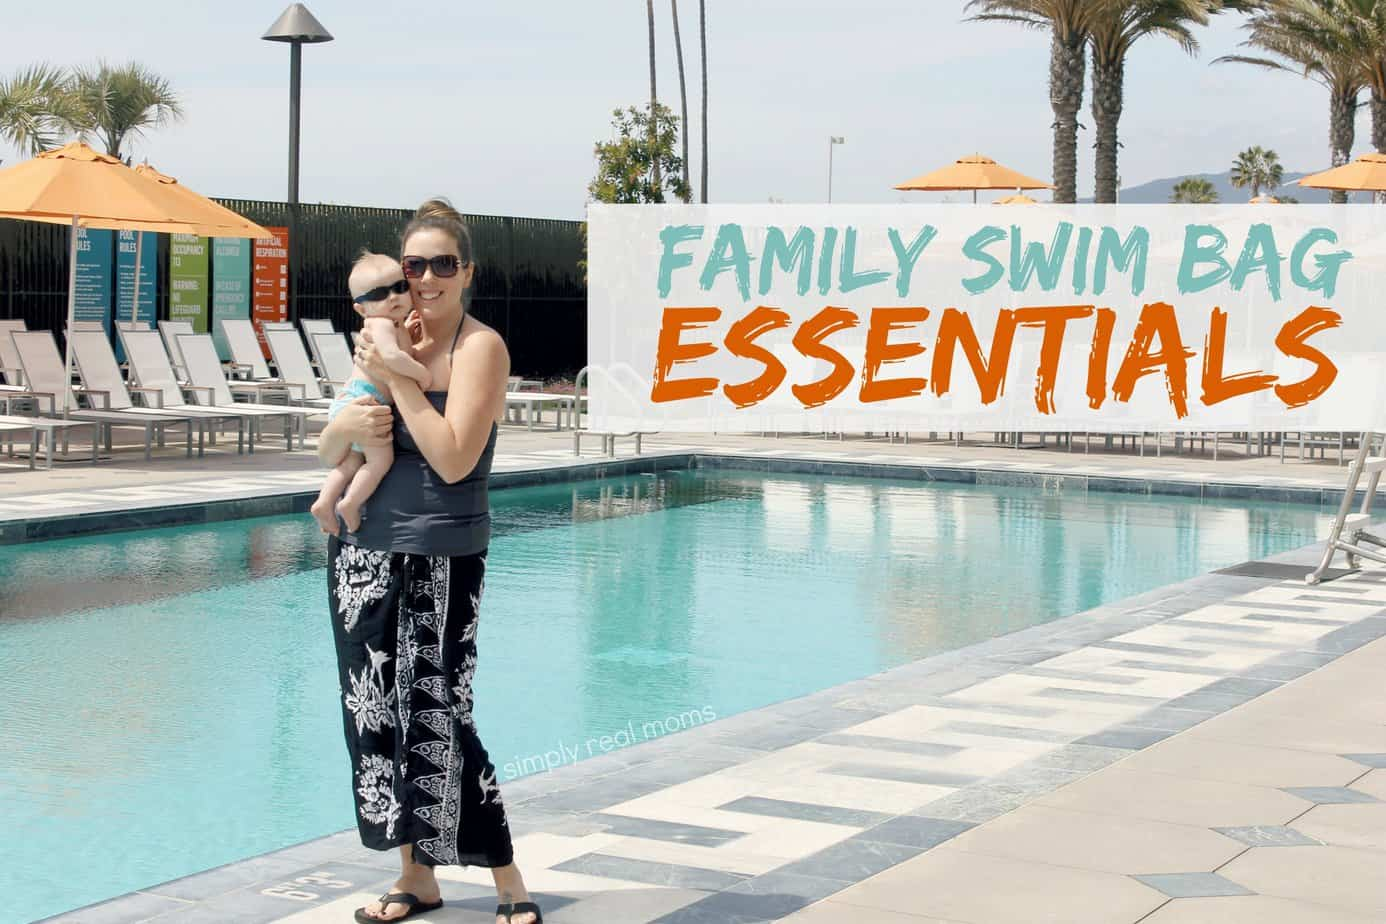 Family Swim Bag Essentials 4